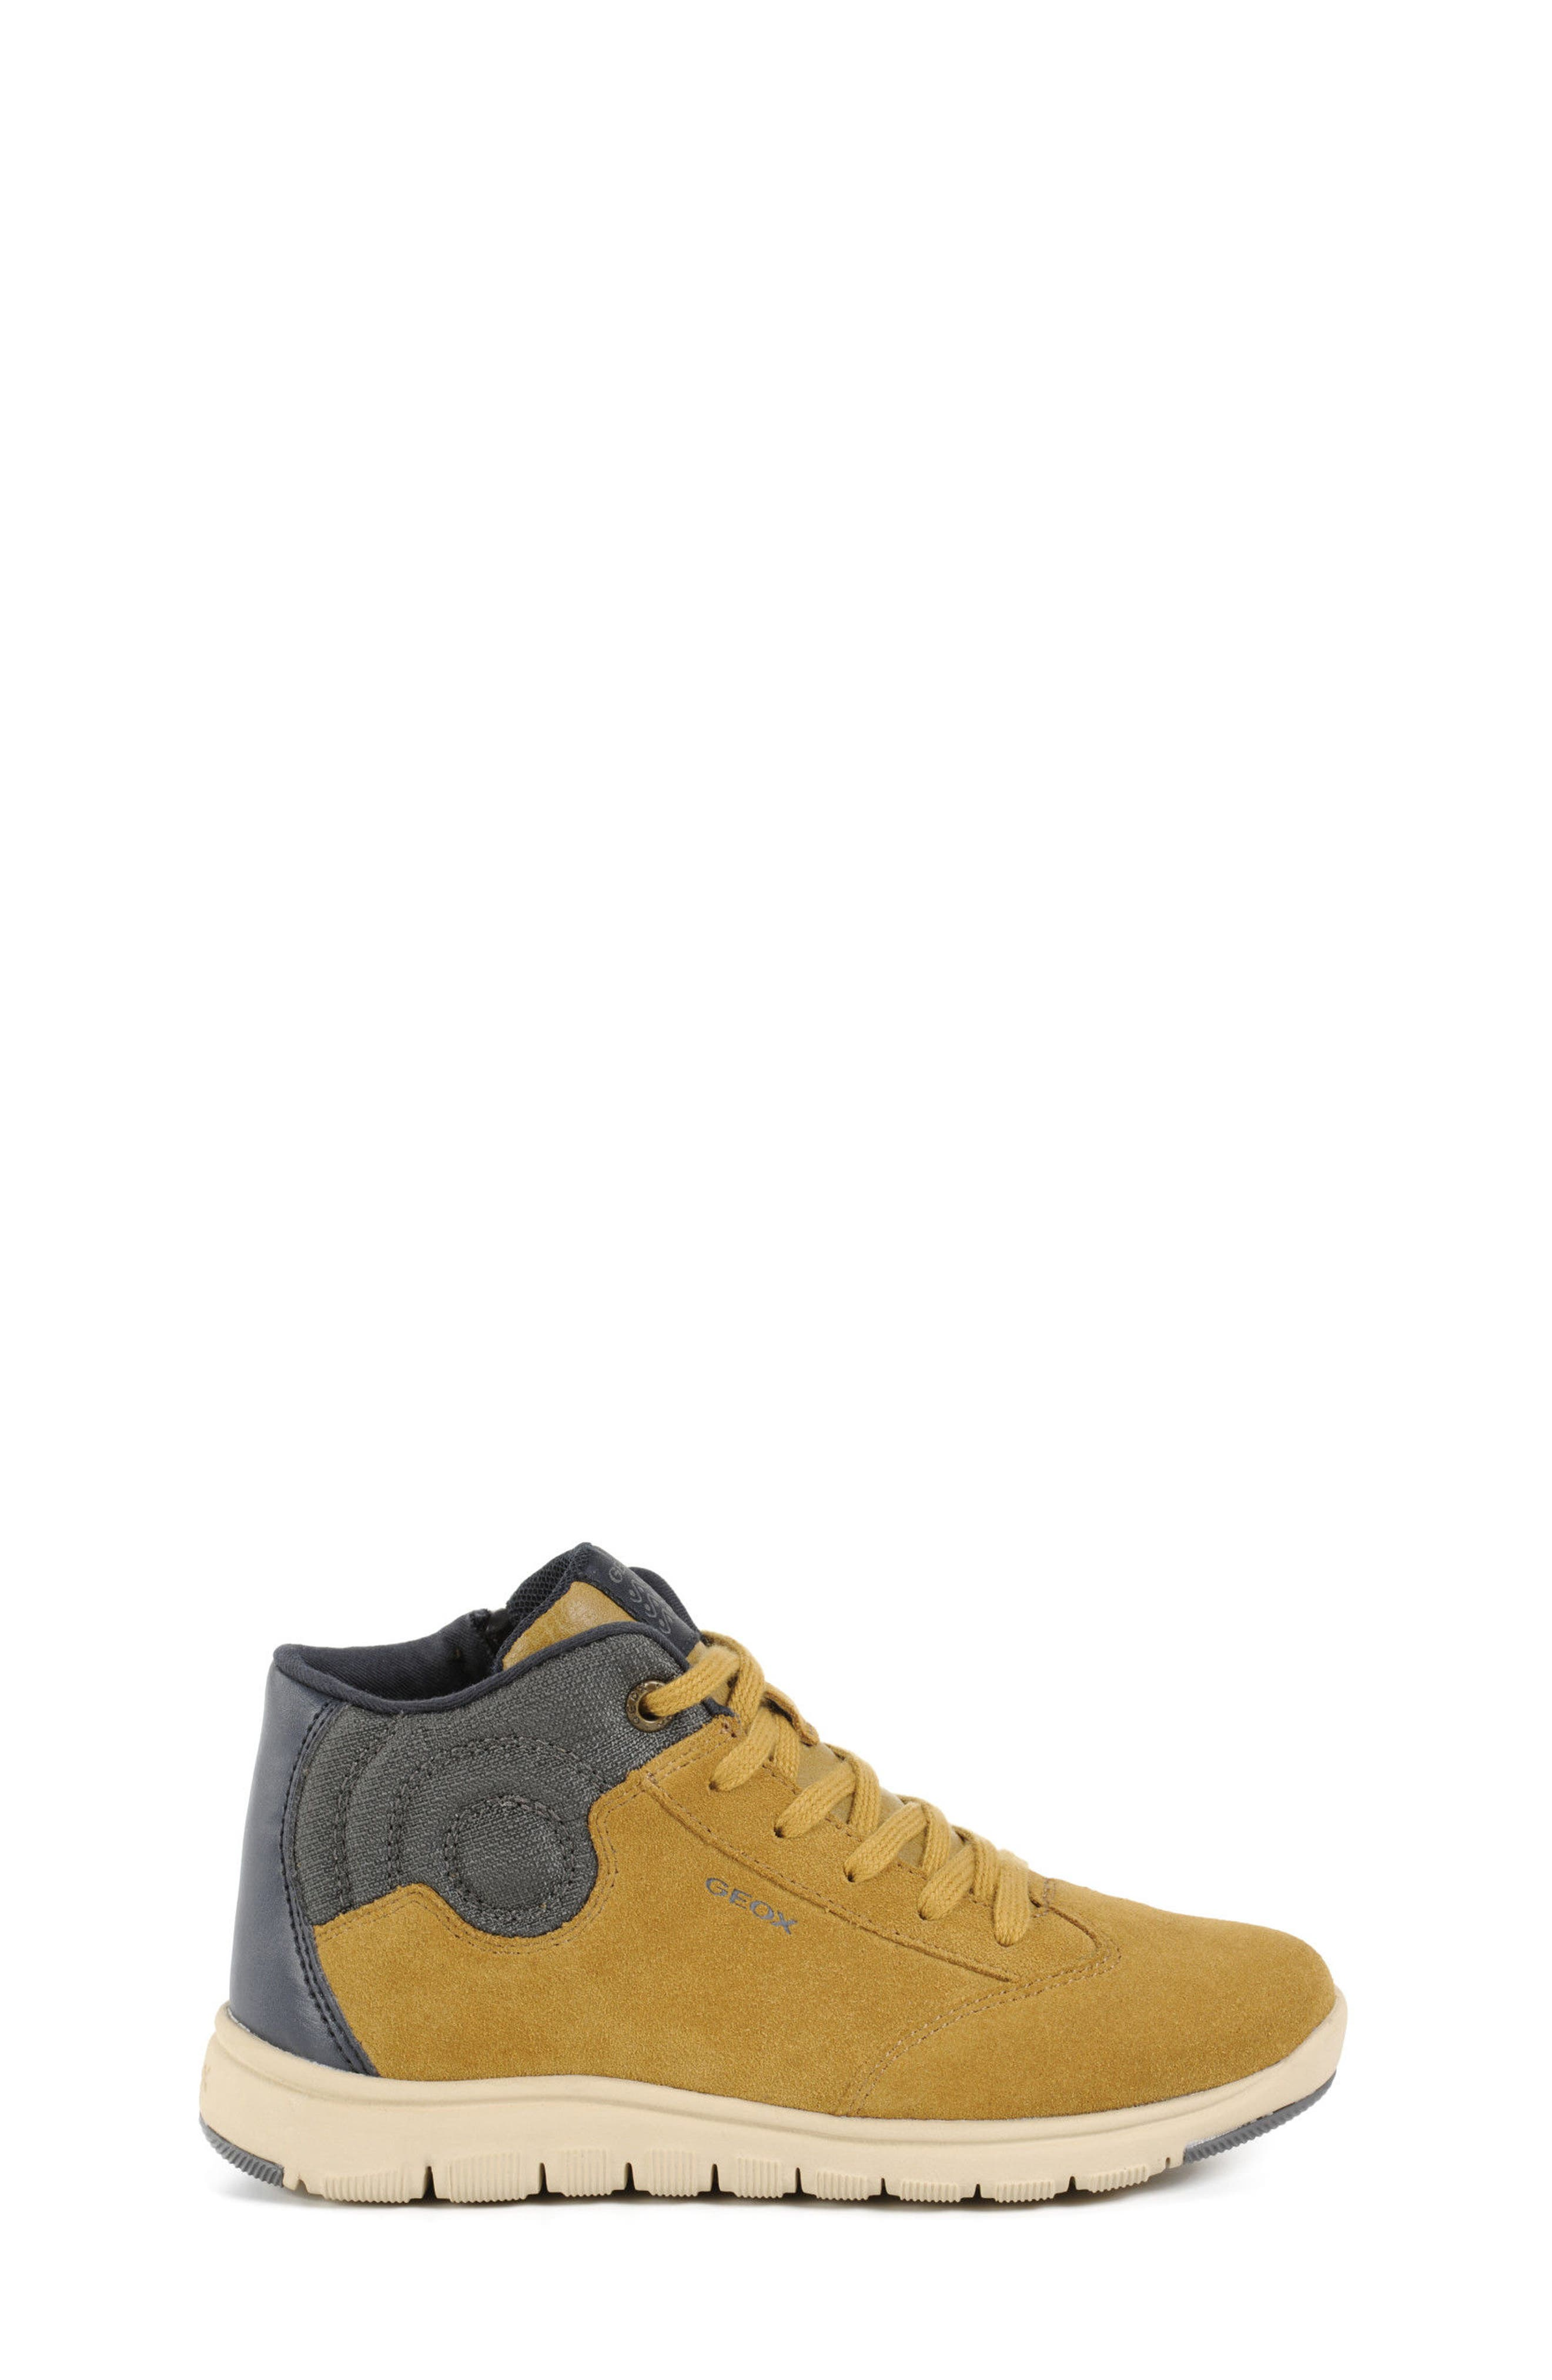 Xunday Mid Top Sneaker,                             Alternate thumbnail 3, color,                             020